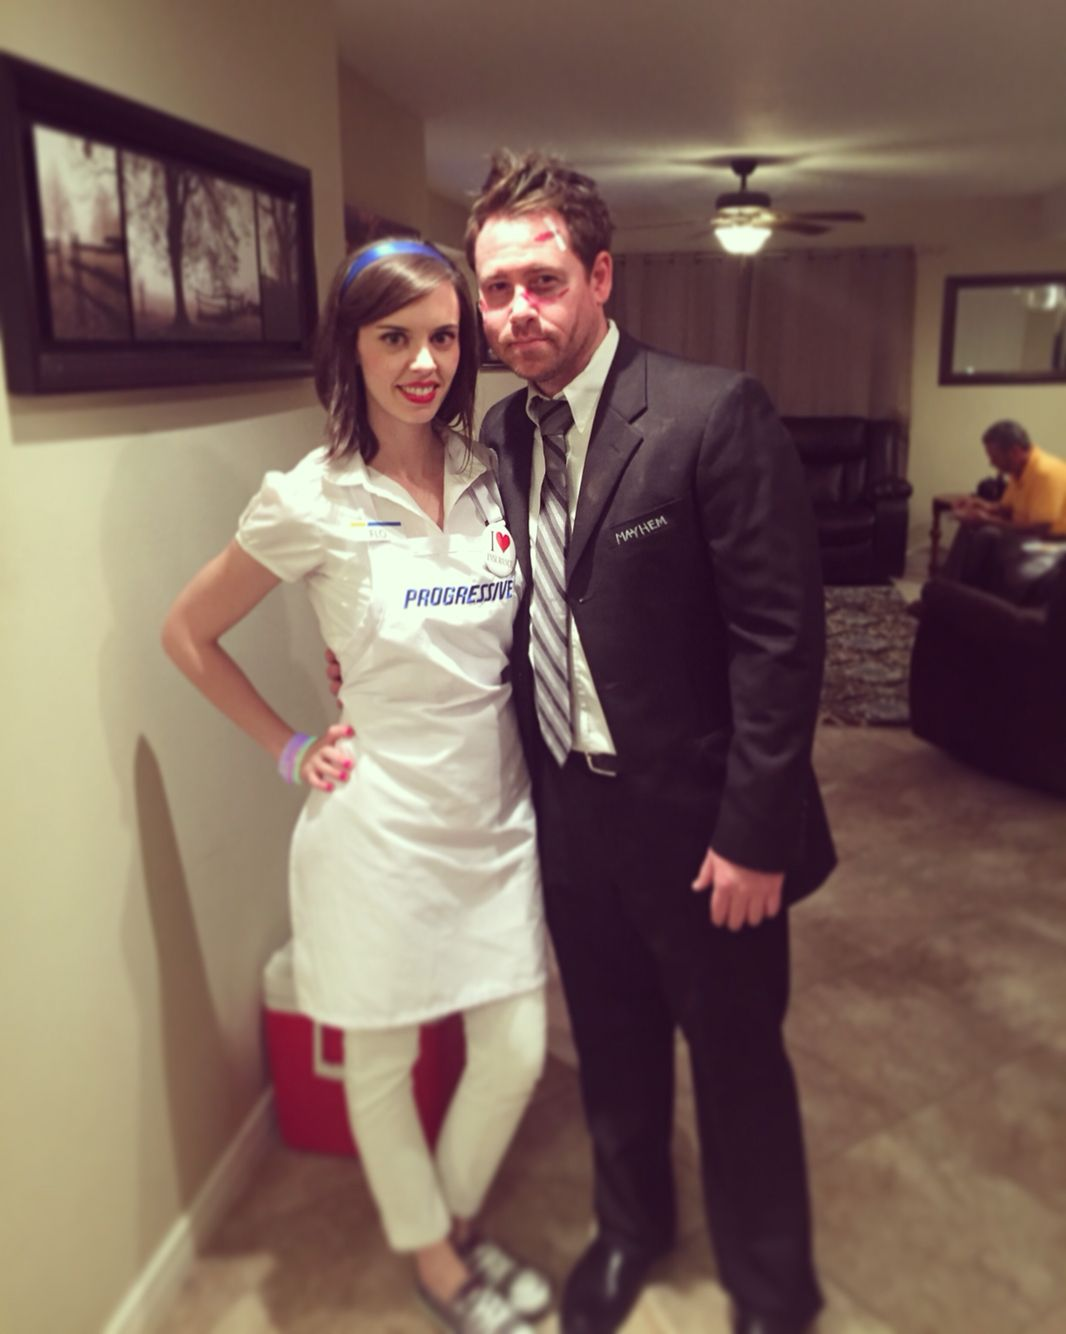 Halloween Costumes Flo from progressive and Mayhem from Allstate insurance costumes ! So fun!  sc 1 st  Pinterest & Halloween Costumes Flo from progressive and Mayhem from Allstate ...